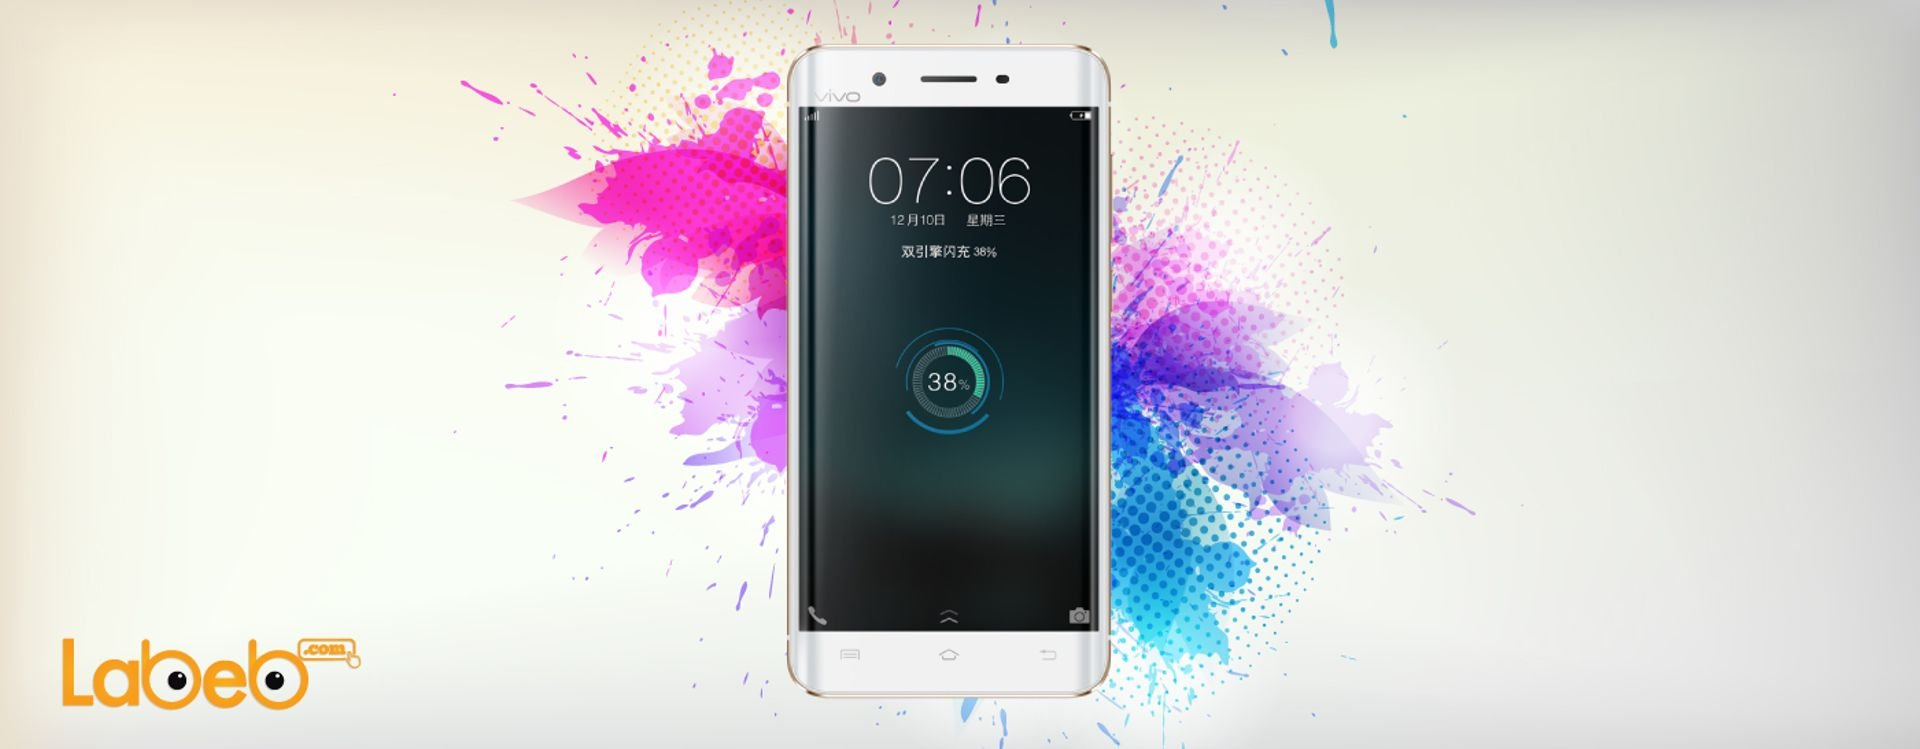 Vivo Xplay 5 Elite are Considered are the First Smartphone in the World with a 6 GB RAM.